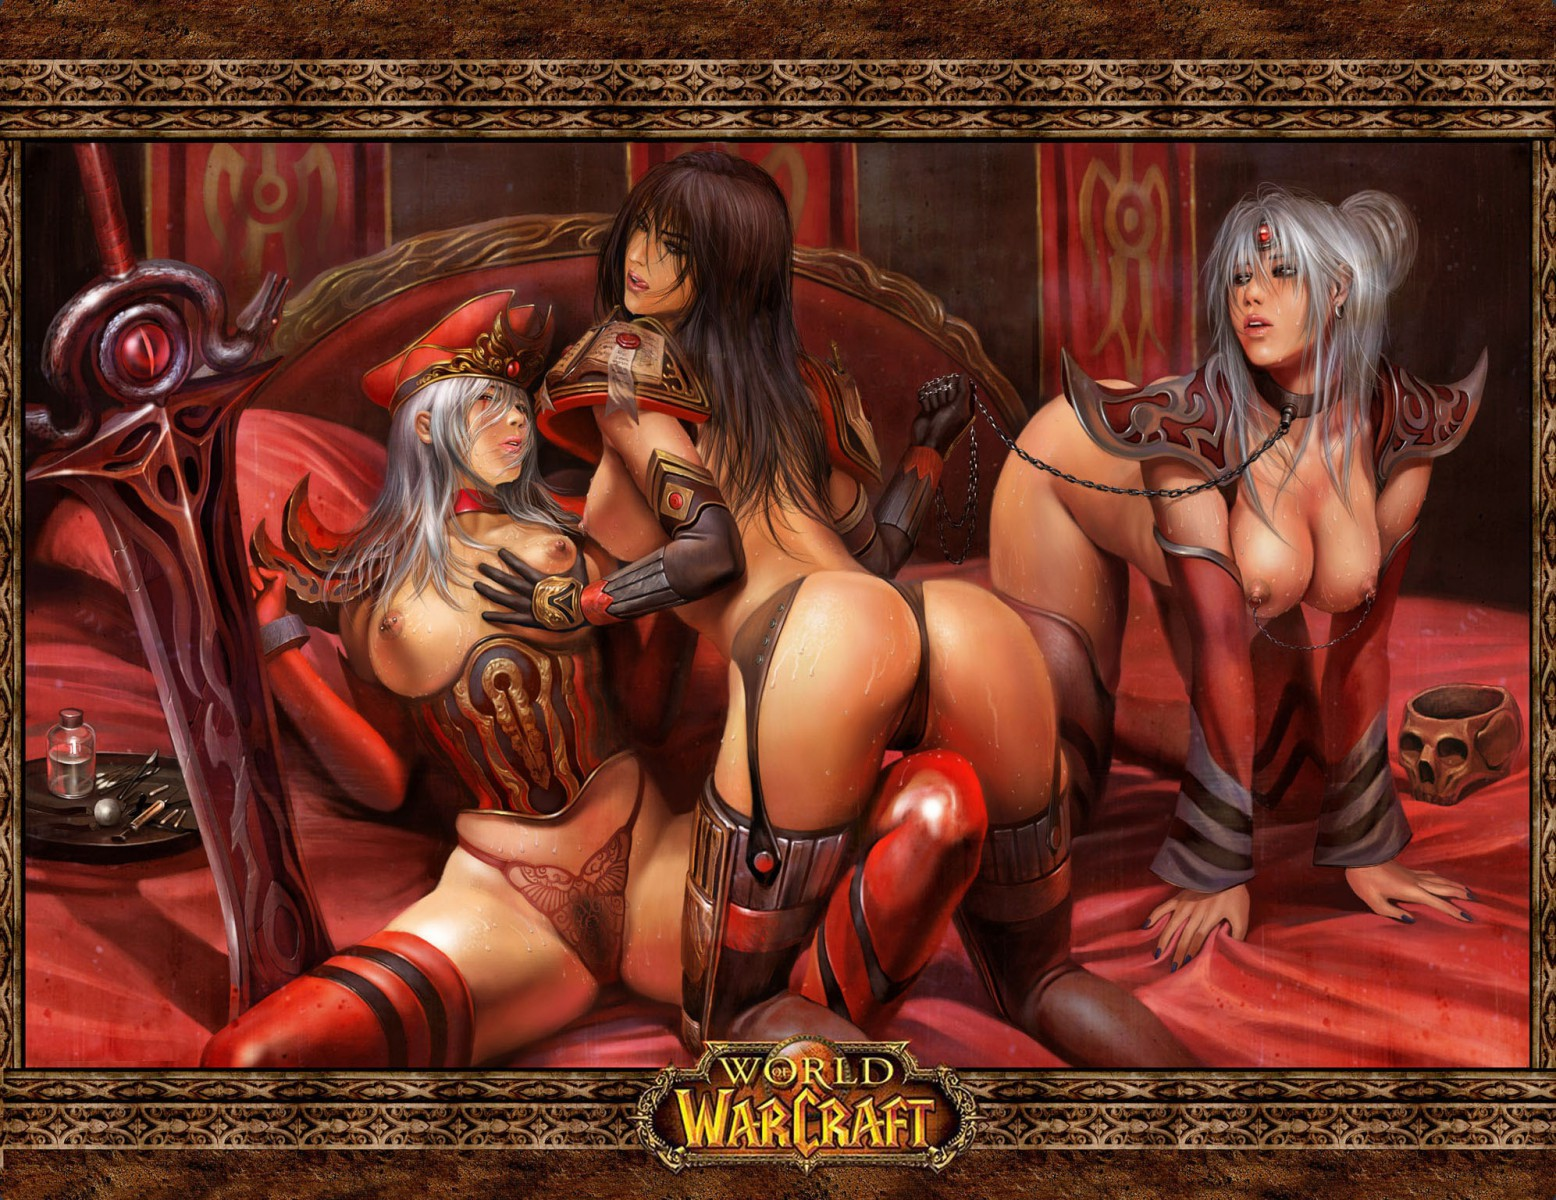 Pic warcraft anime sex porns pics smut movies